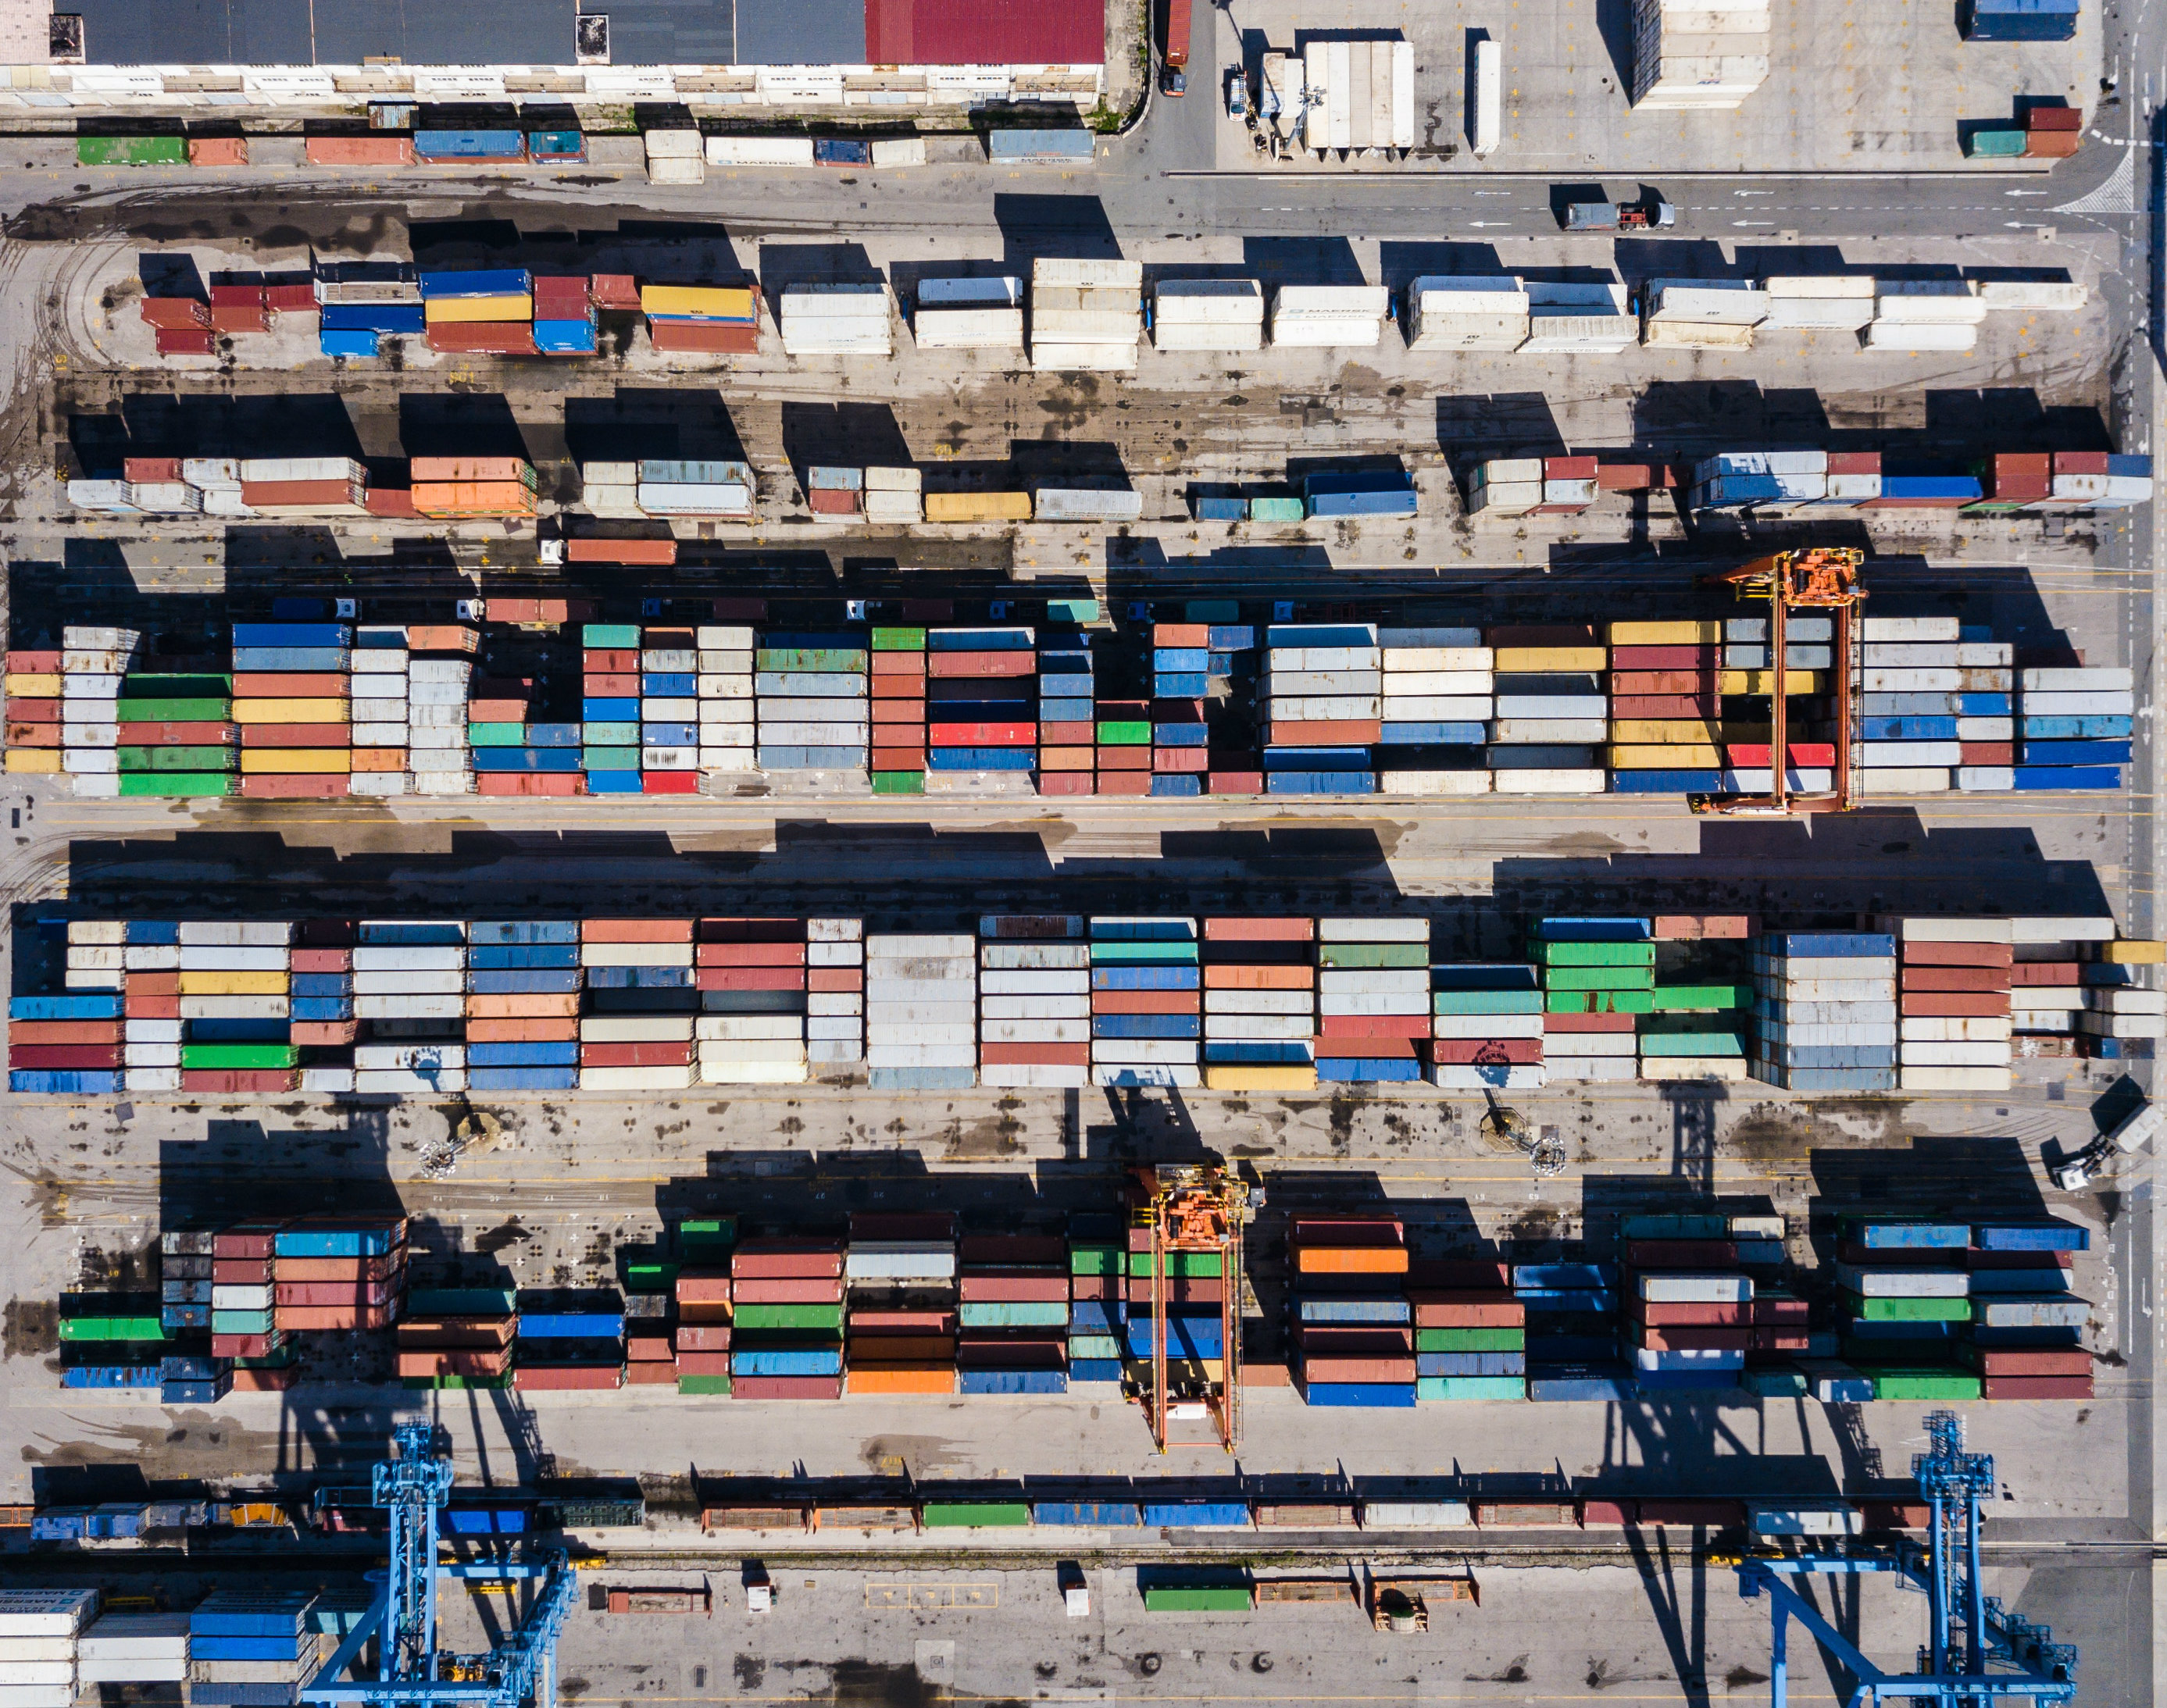 Portside Efficiency, Digitization and Automation, Rates, Trade Wars, and Sustainability